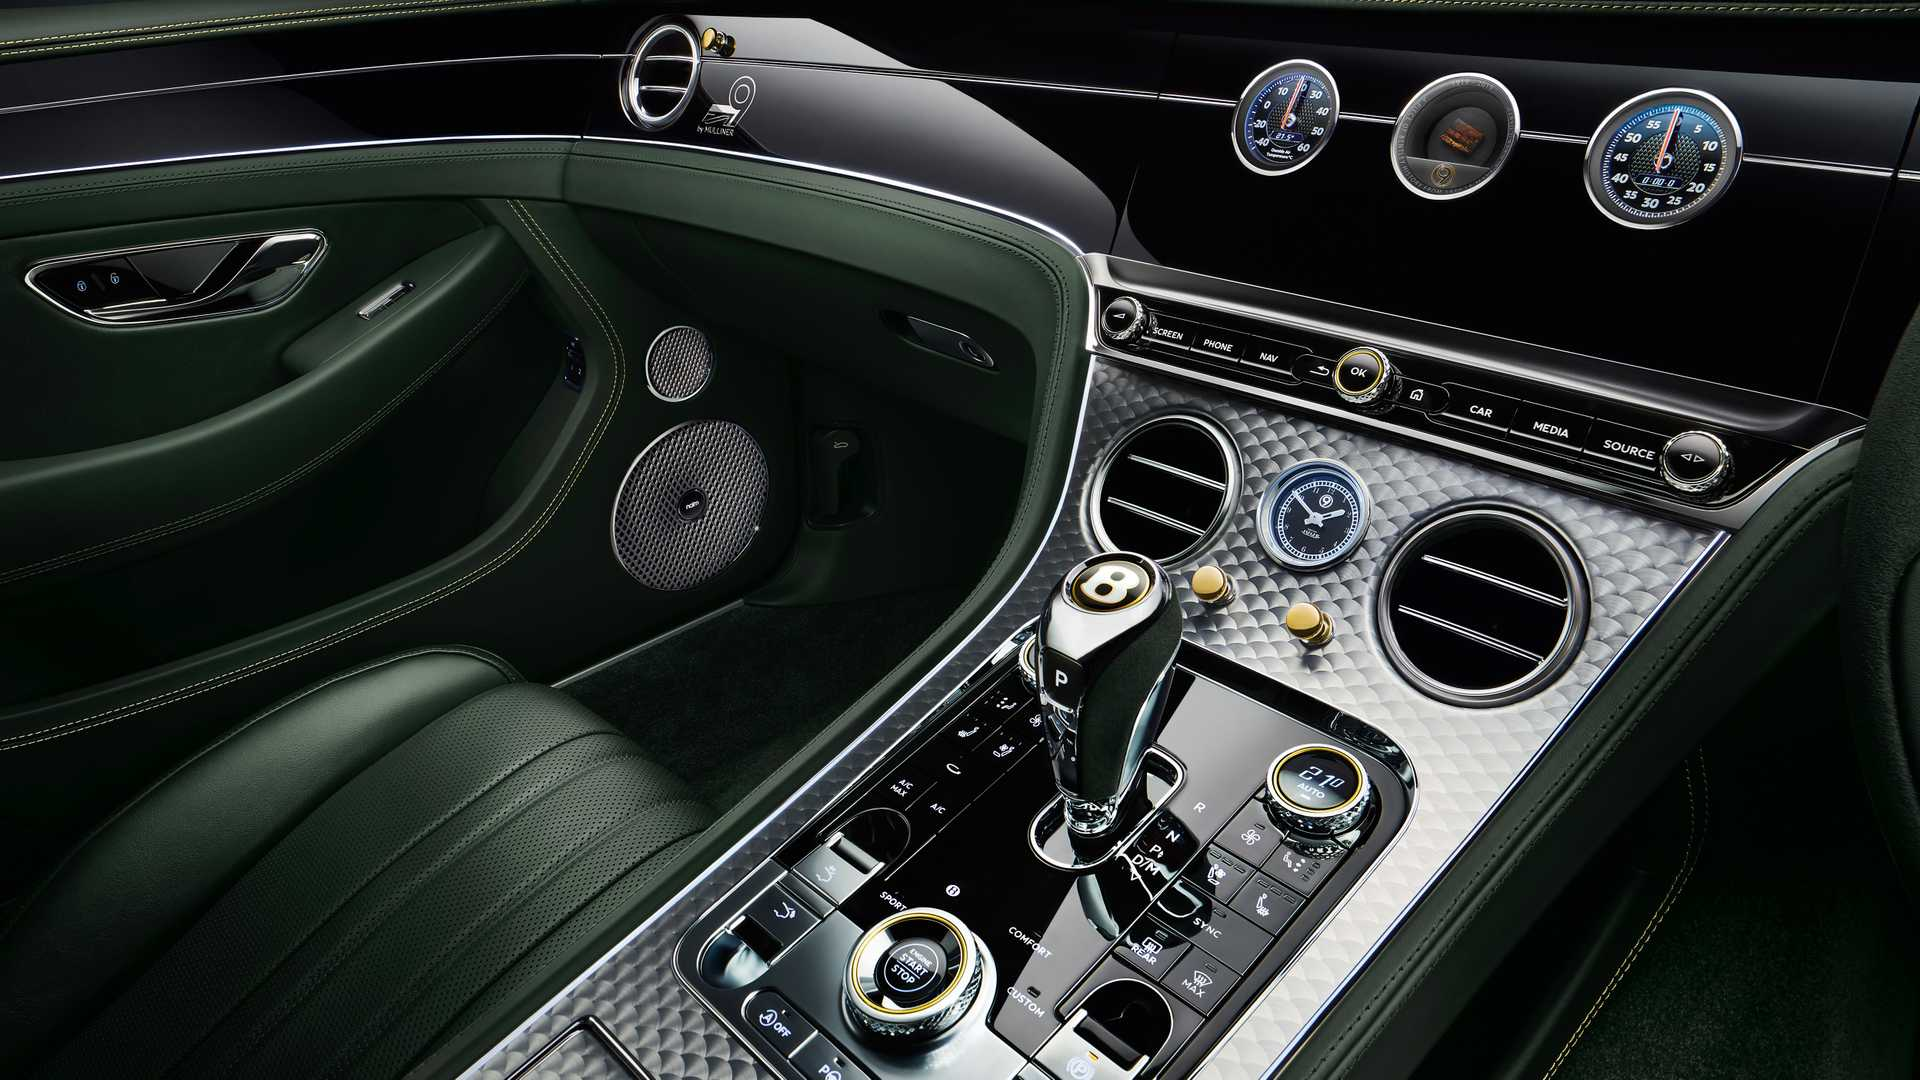 2019 Bentley Continental GT Number 9 Edition by Mulliner Interior Detail Wallpapers (8)